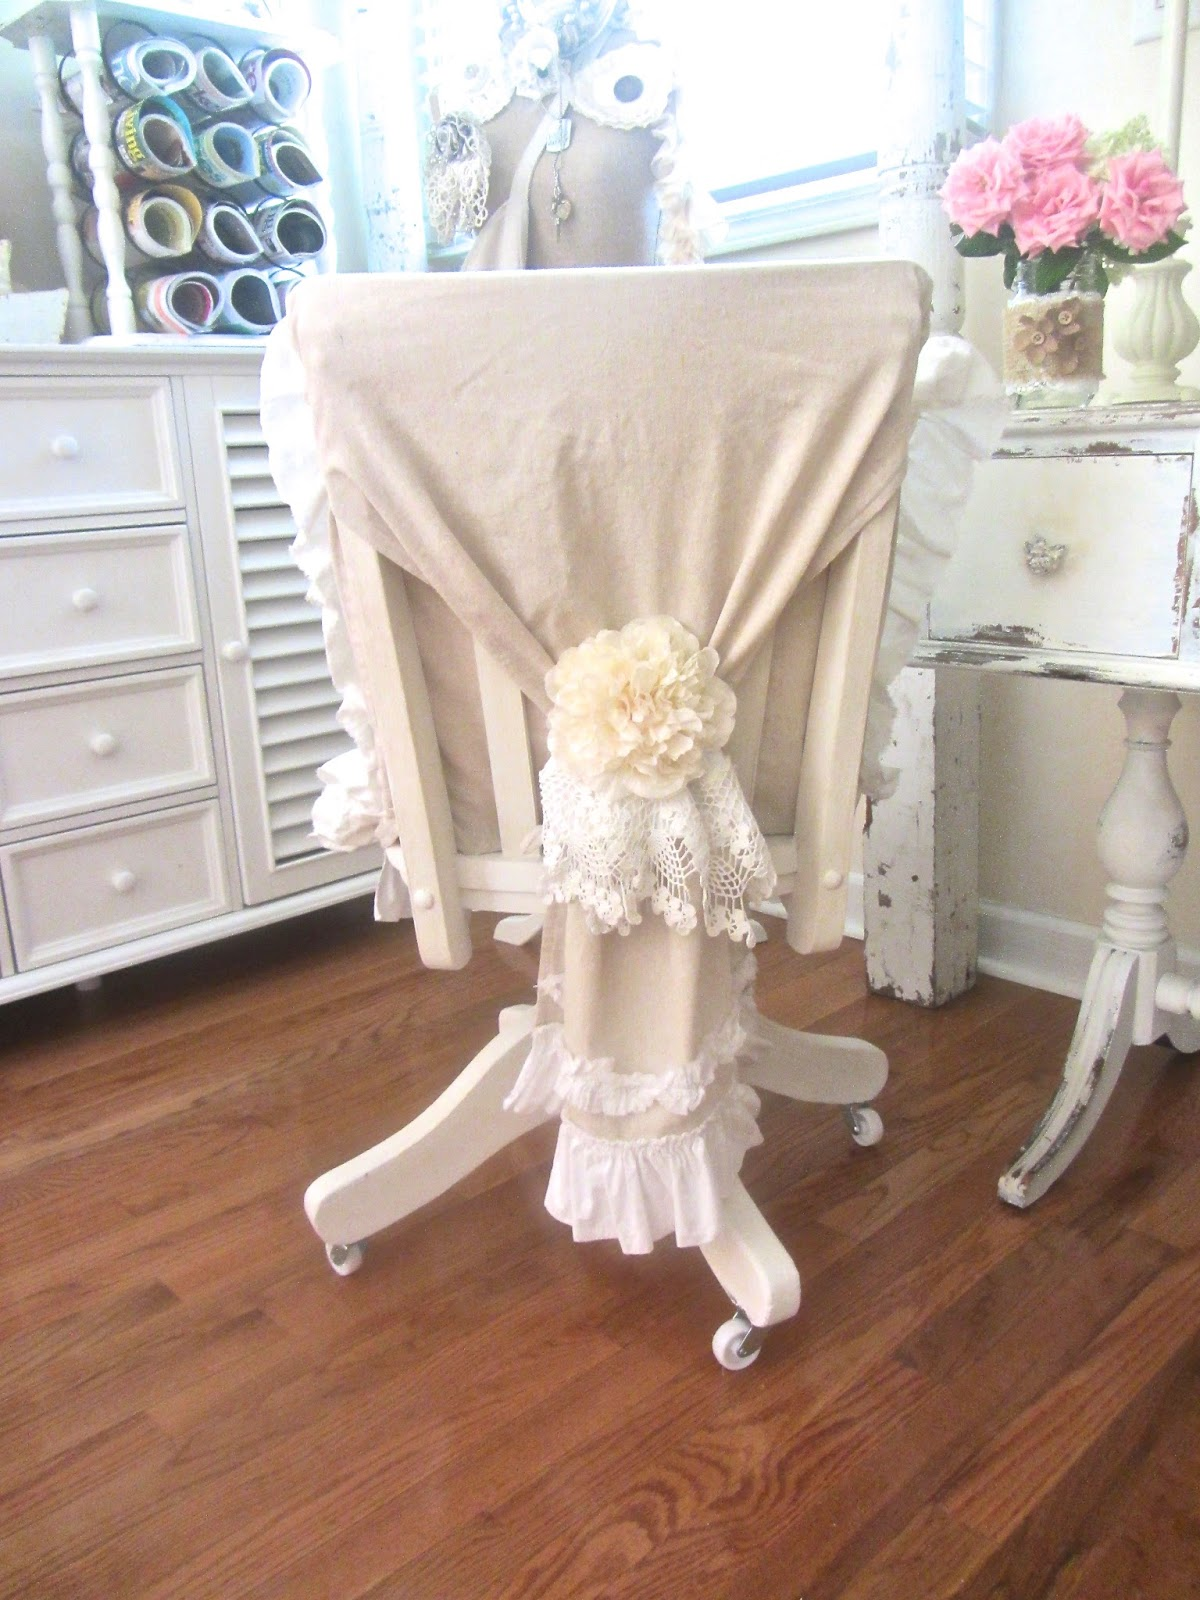 Junk Chic Cottage fice Chair Updo and a Sneak Peek at the new